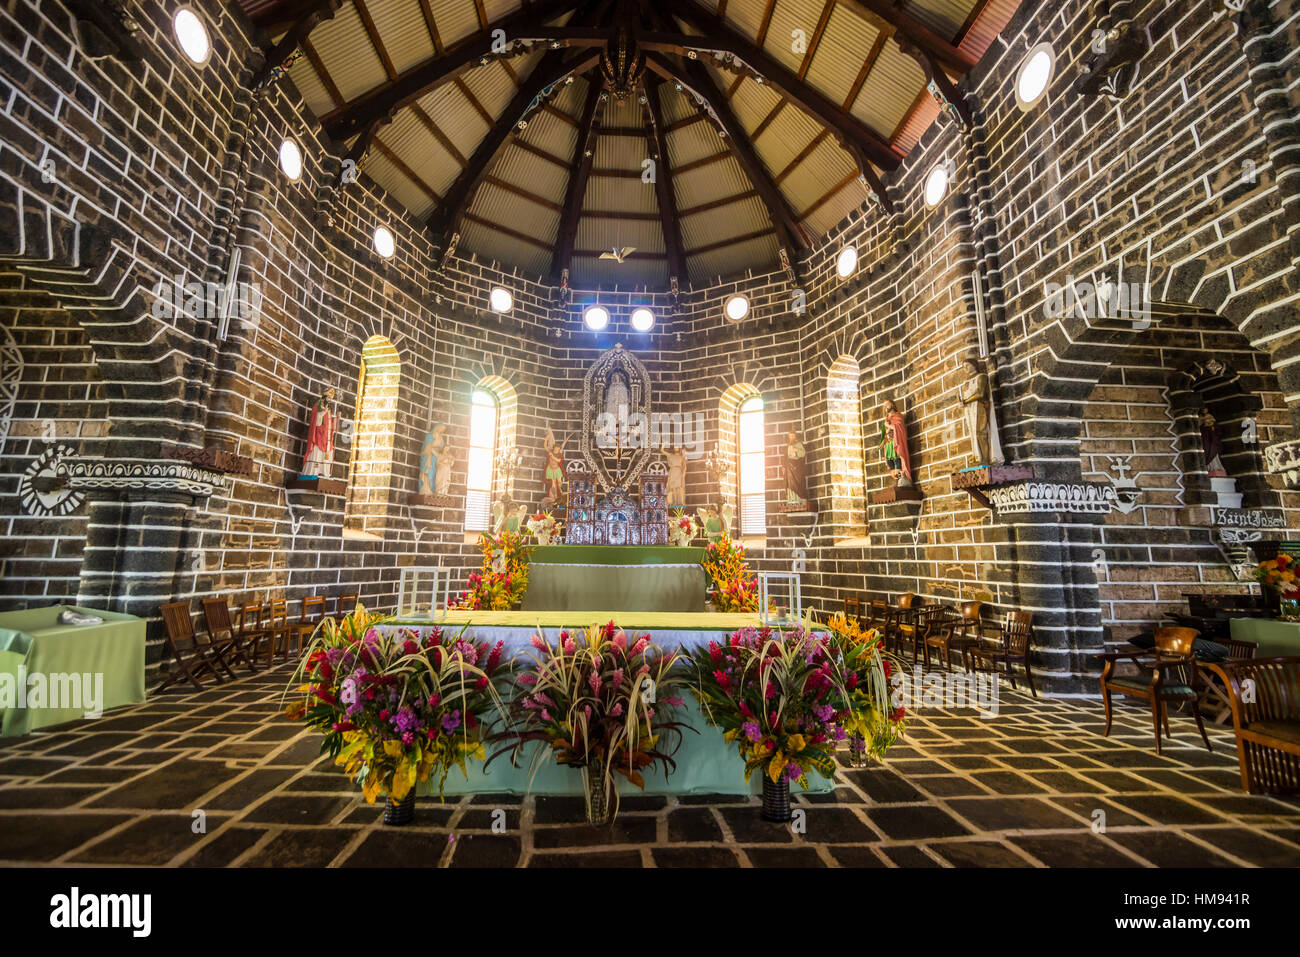 Cathedral of Our Lady of the Assumption, Mata-Utu, Wallis, Wallis and Futuna, South Pacific, Pacific - Stock Image